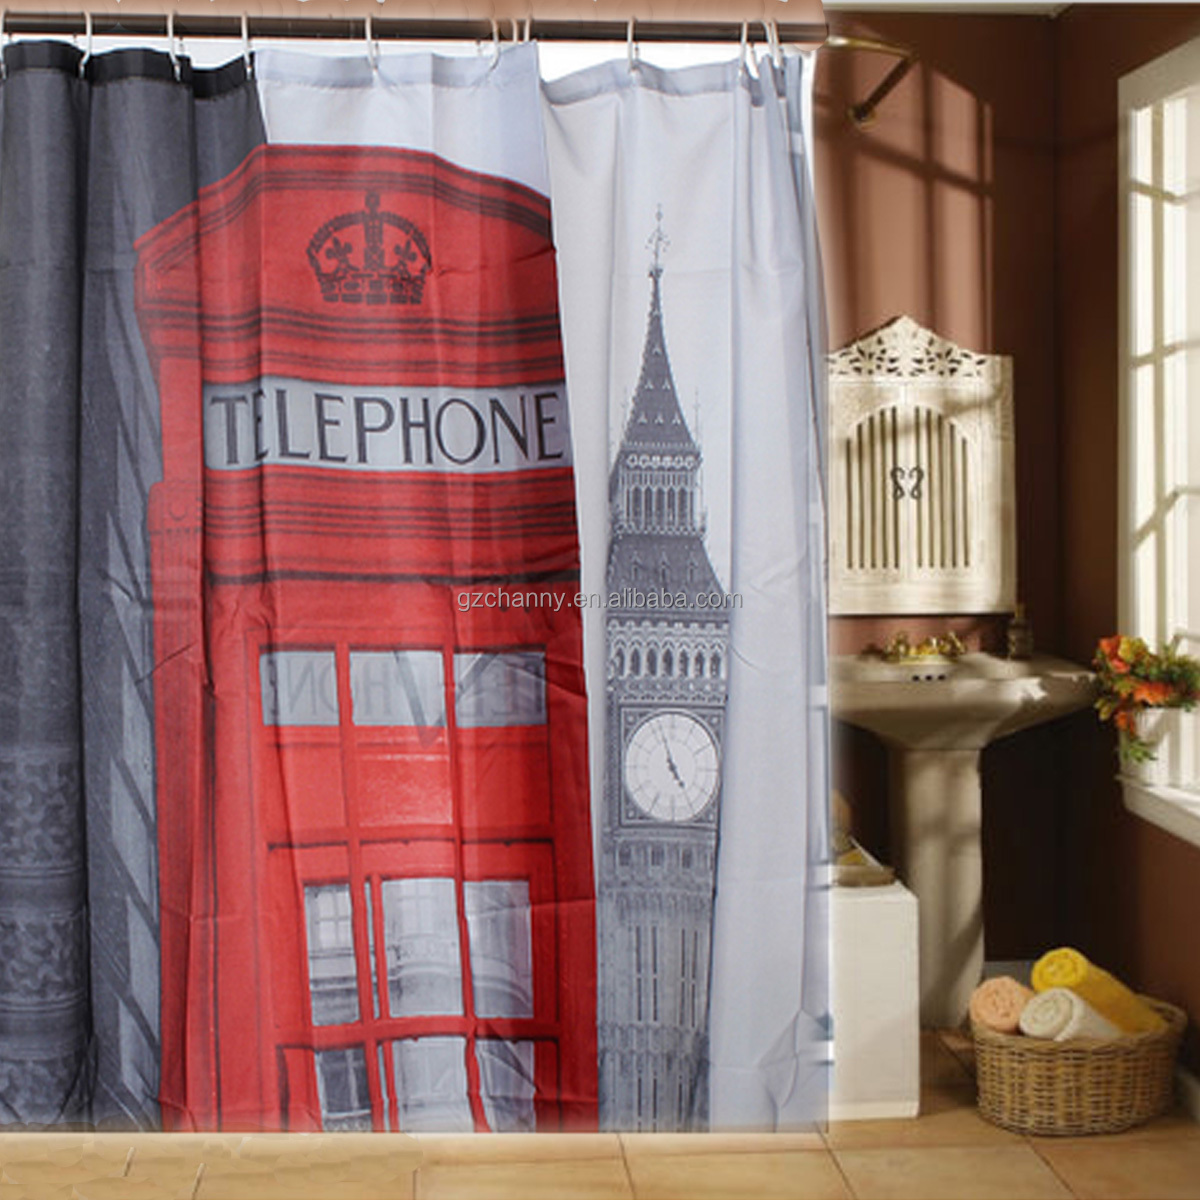 Wholesale diy home decor london big ben telephone booth for Home accessories london